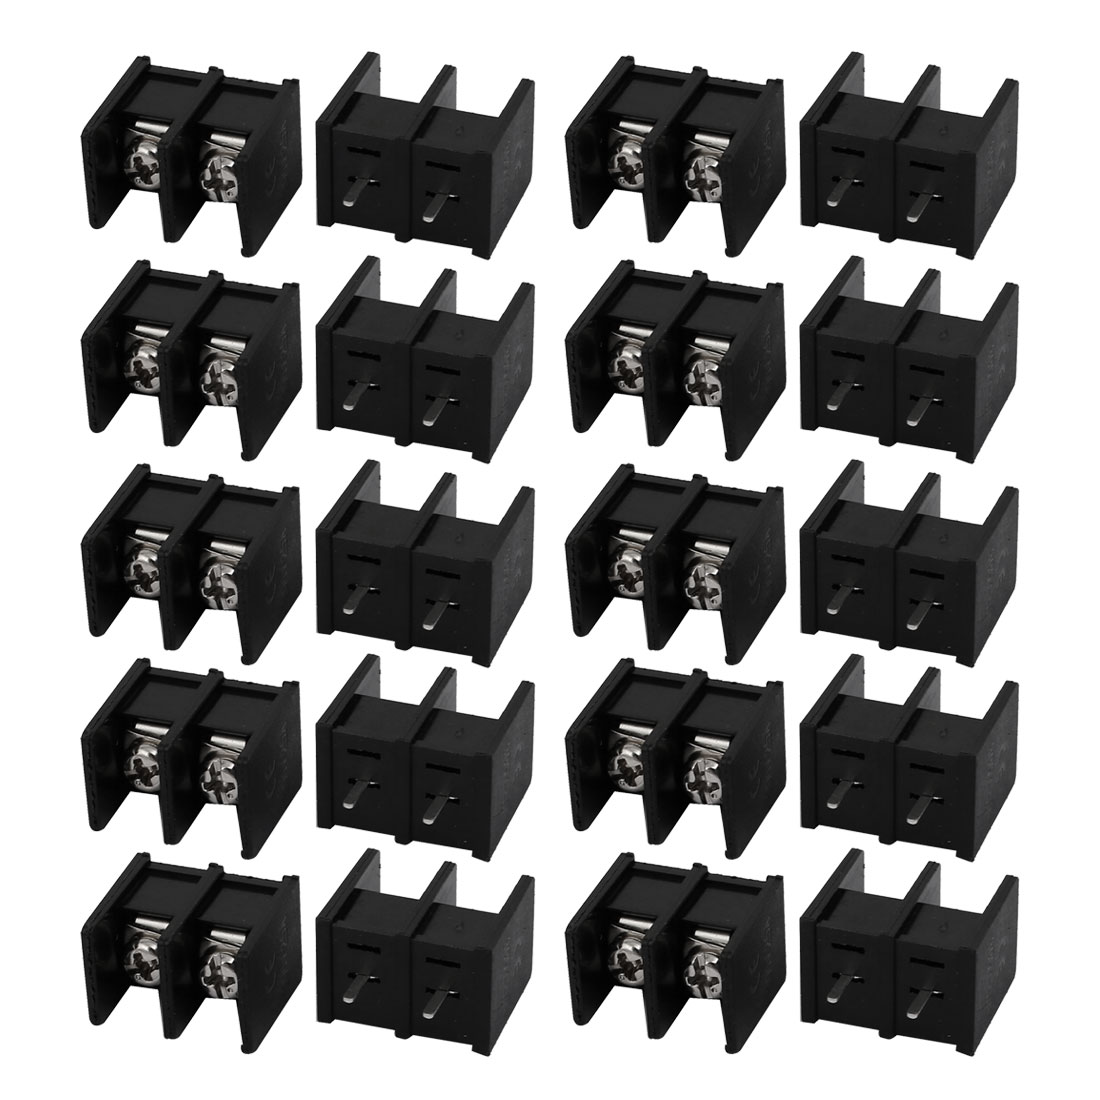 20 Pcs 300V 25A 2 Positions 10mm Pin Pitch Pluggable Terminal Block Black